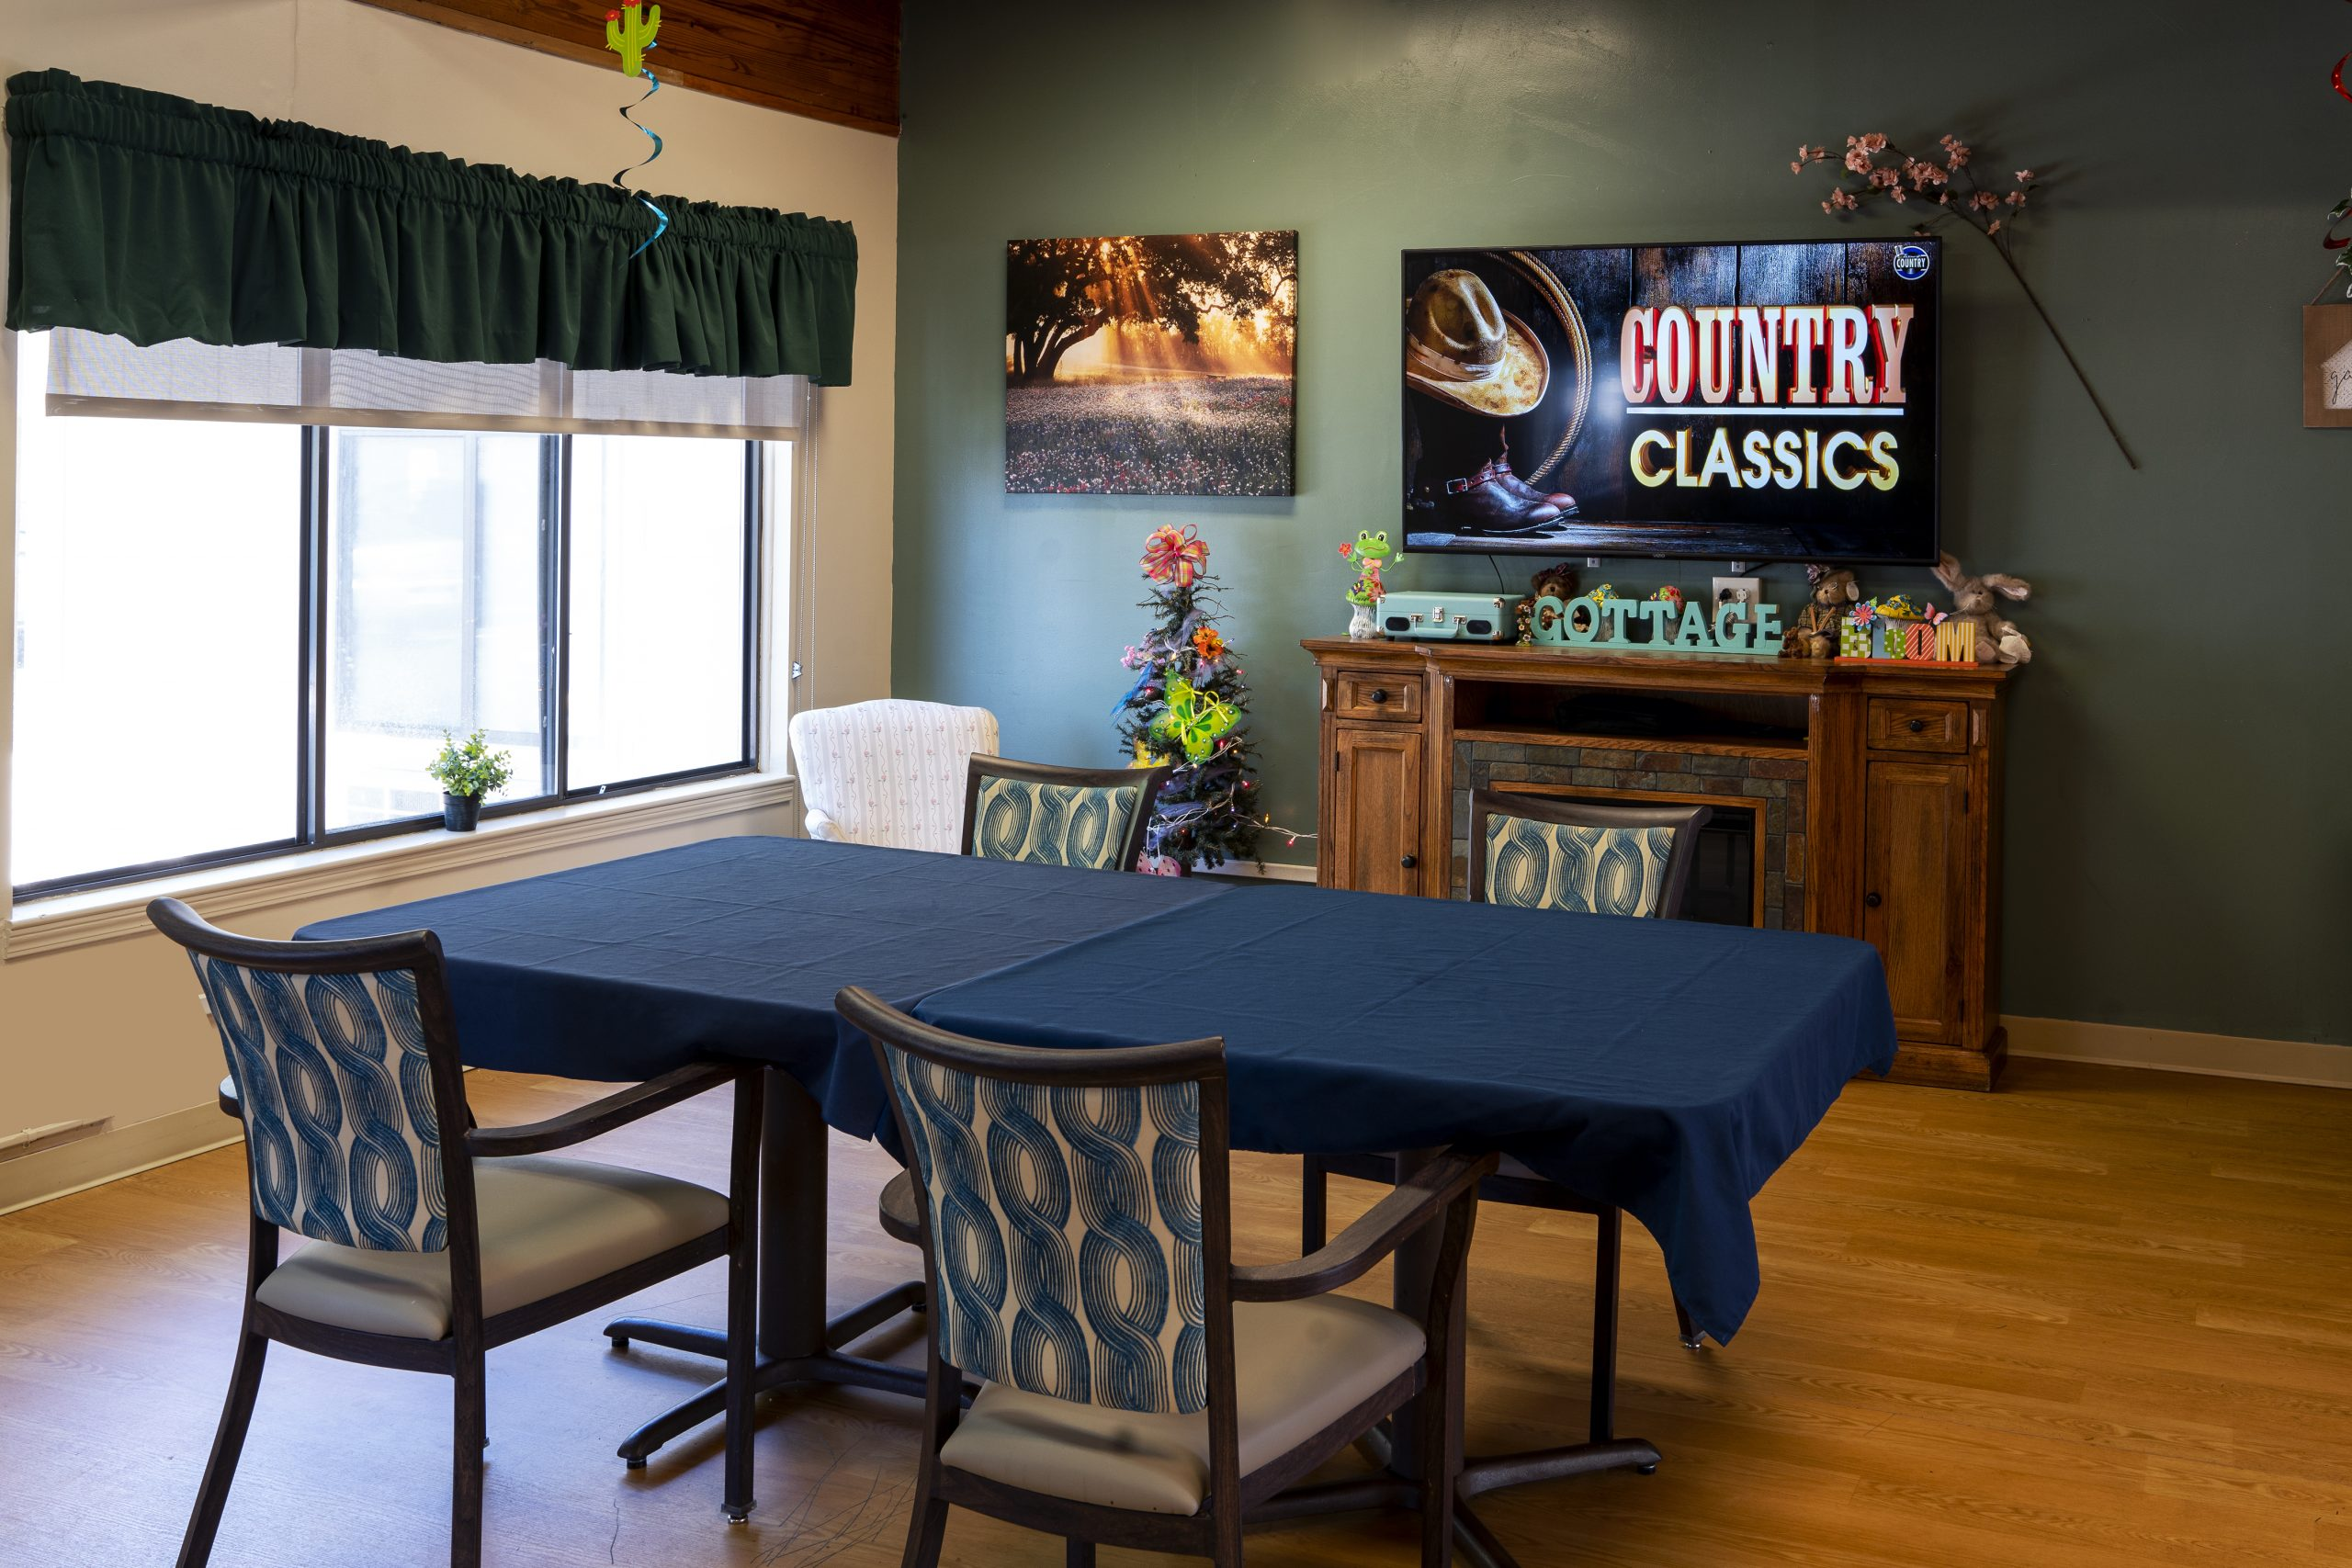 Stonerise Parkersburg activity room with seating area, fireplace and TV